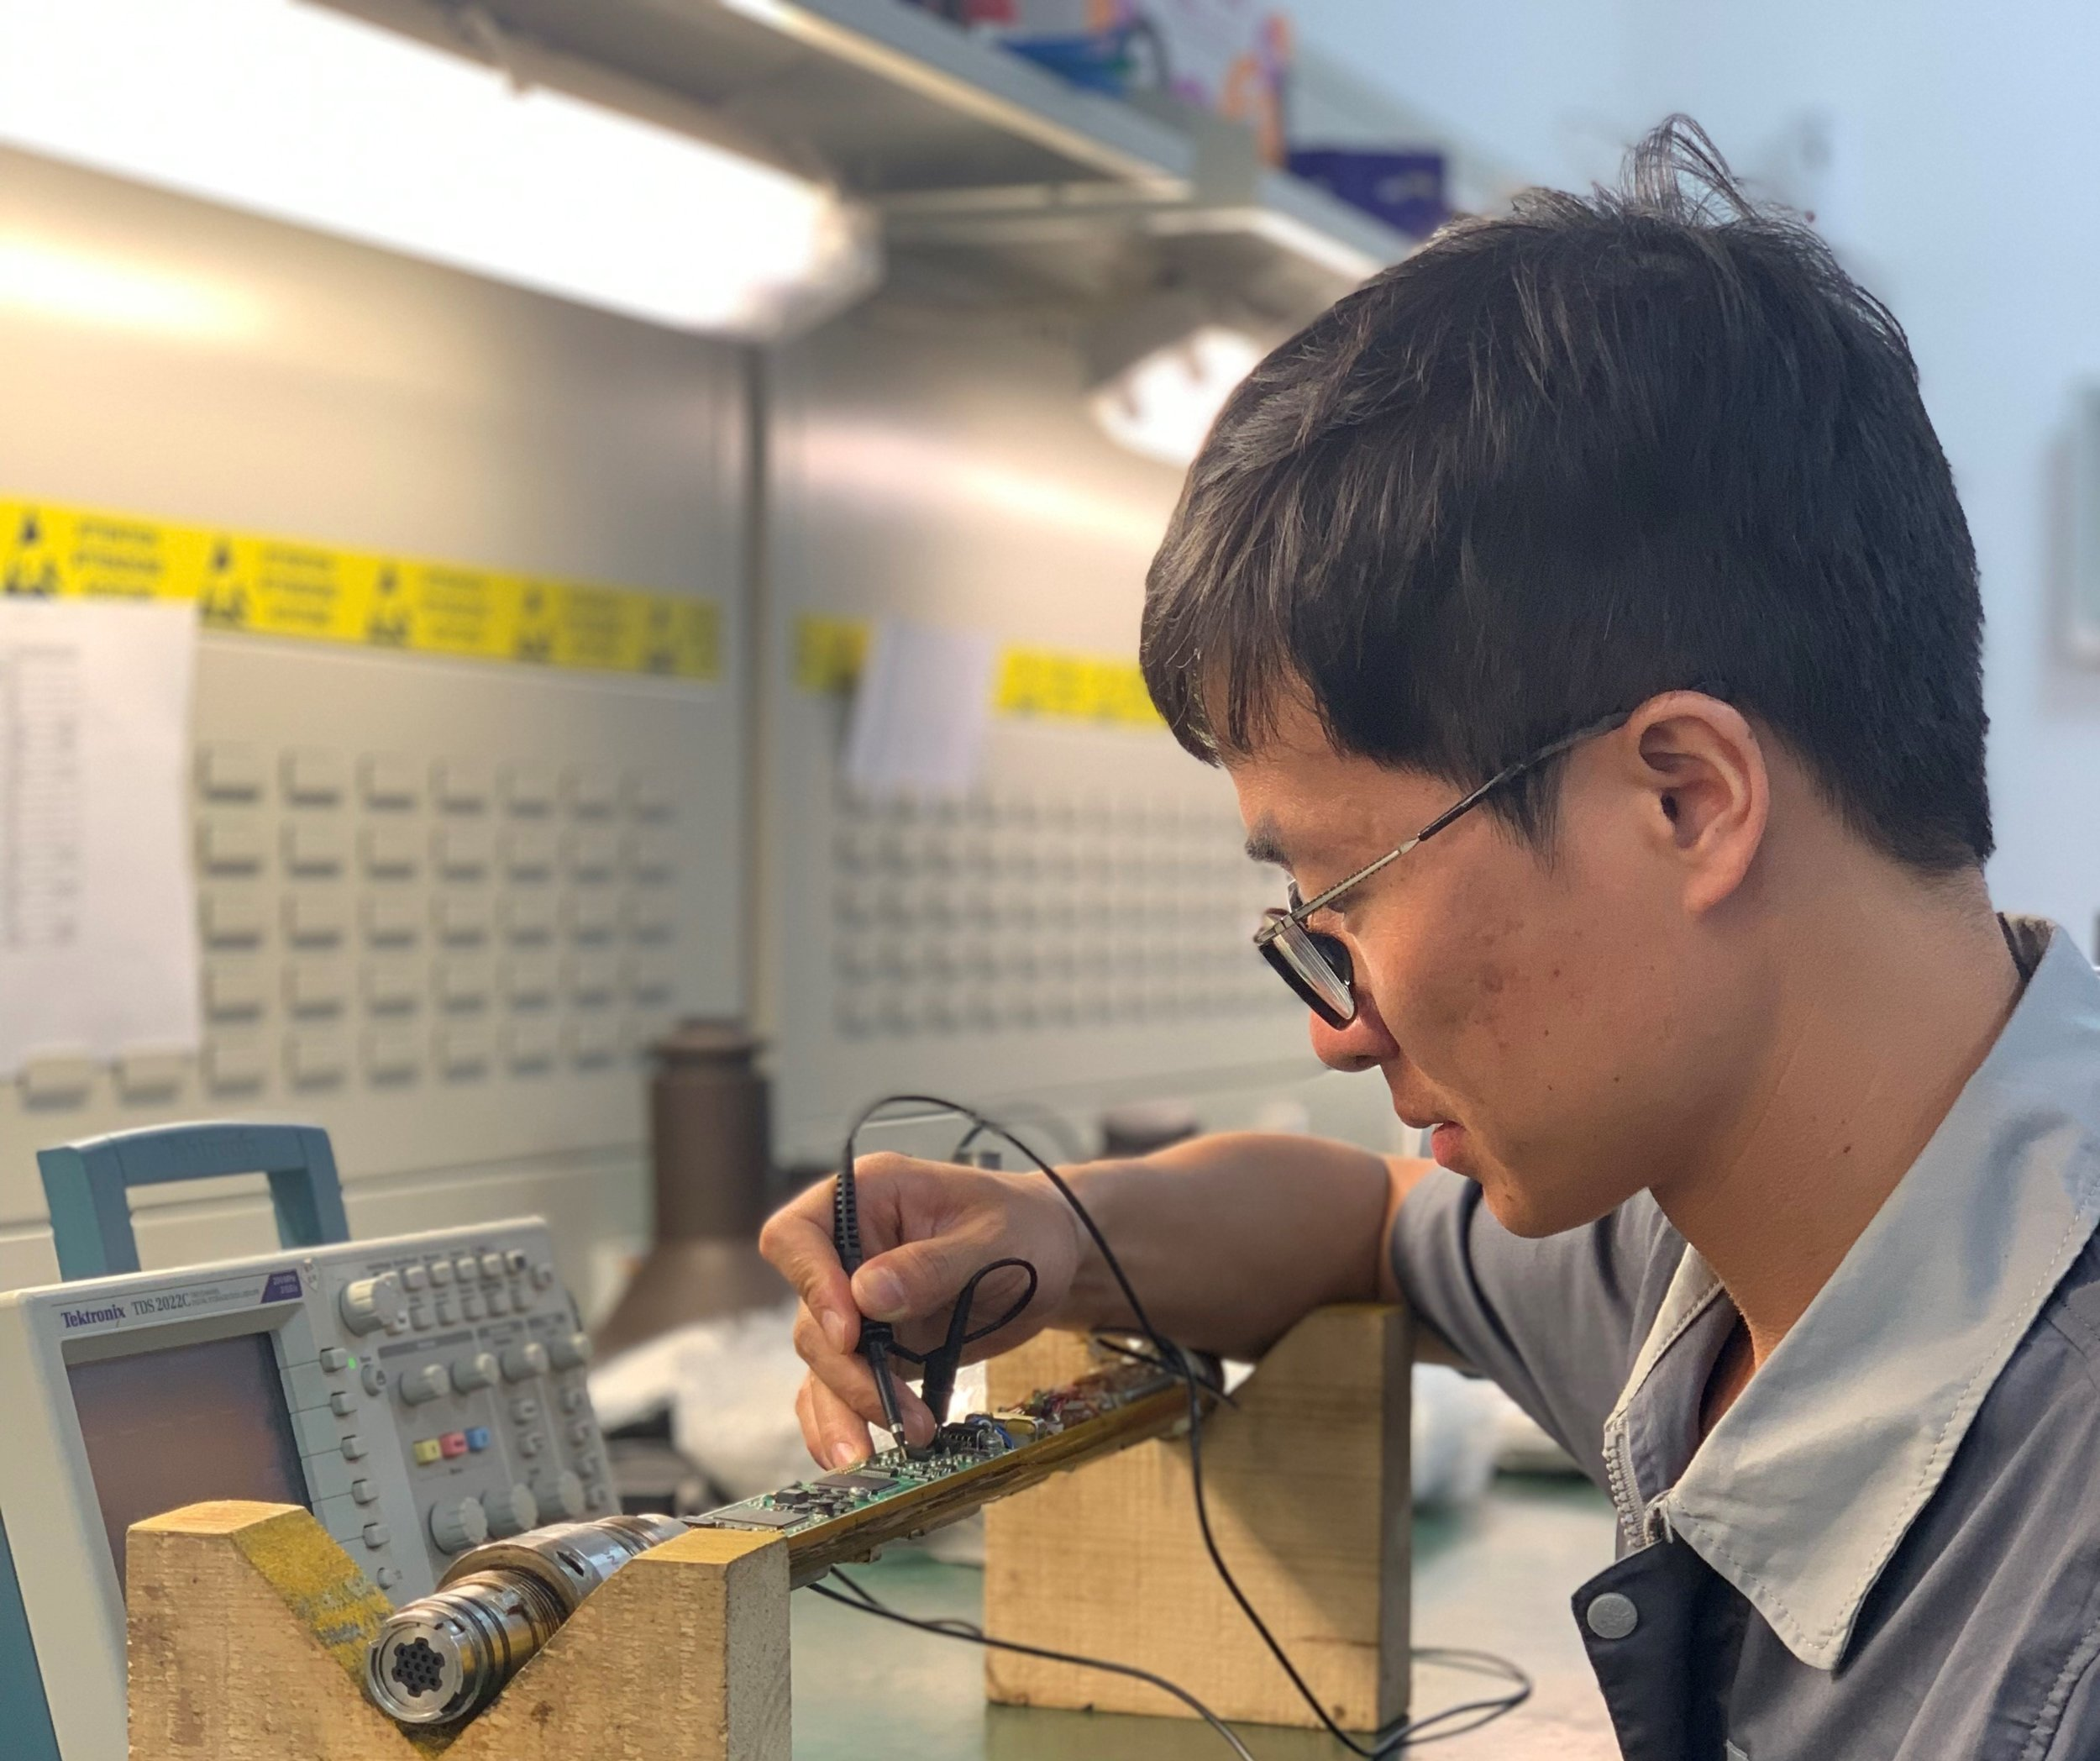 About Us - At GOWell, we are constantly evolving to meet our customer´s growing needs. Our roots are in China, where the company was founded. We quickly expanded globally to cover our customer base with Research and Development centers in Houston (USA), Xi´an and Beijing (CN) as well as Technical Support centers present in both hemispheres, where we provide training for the usage of our technologies.